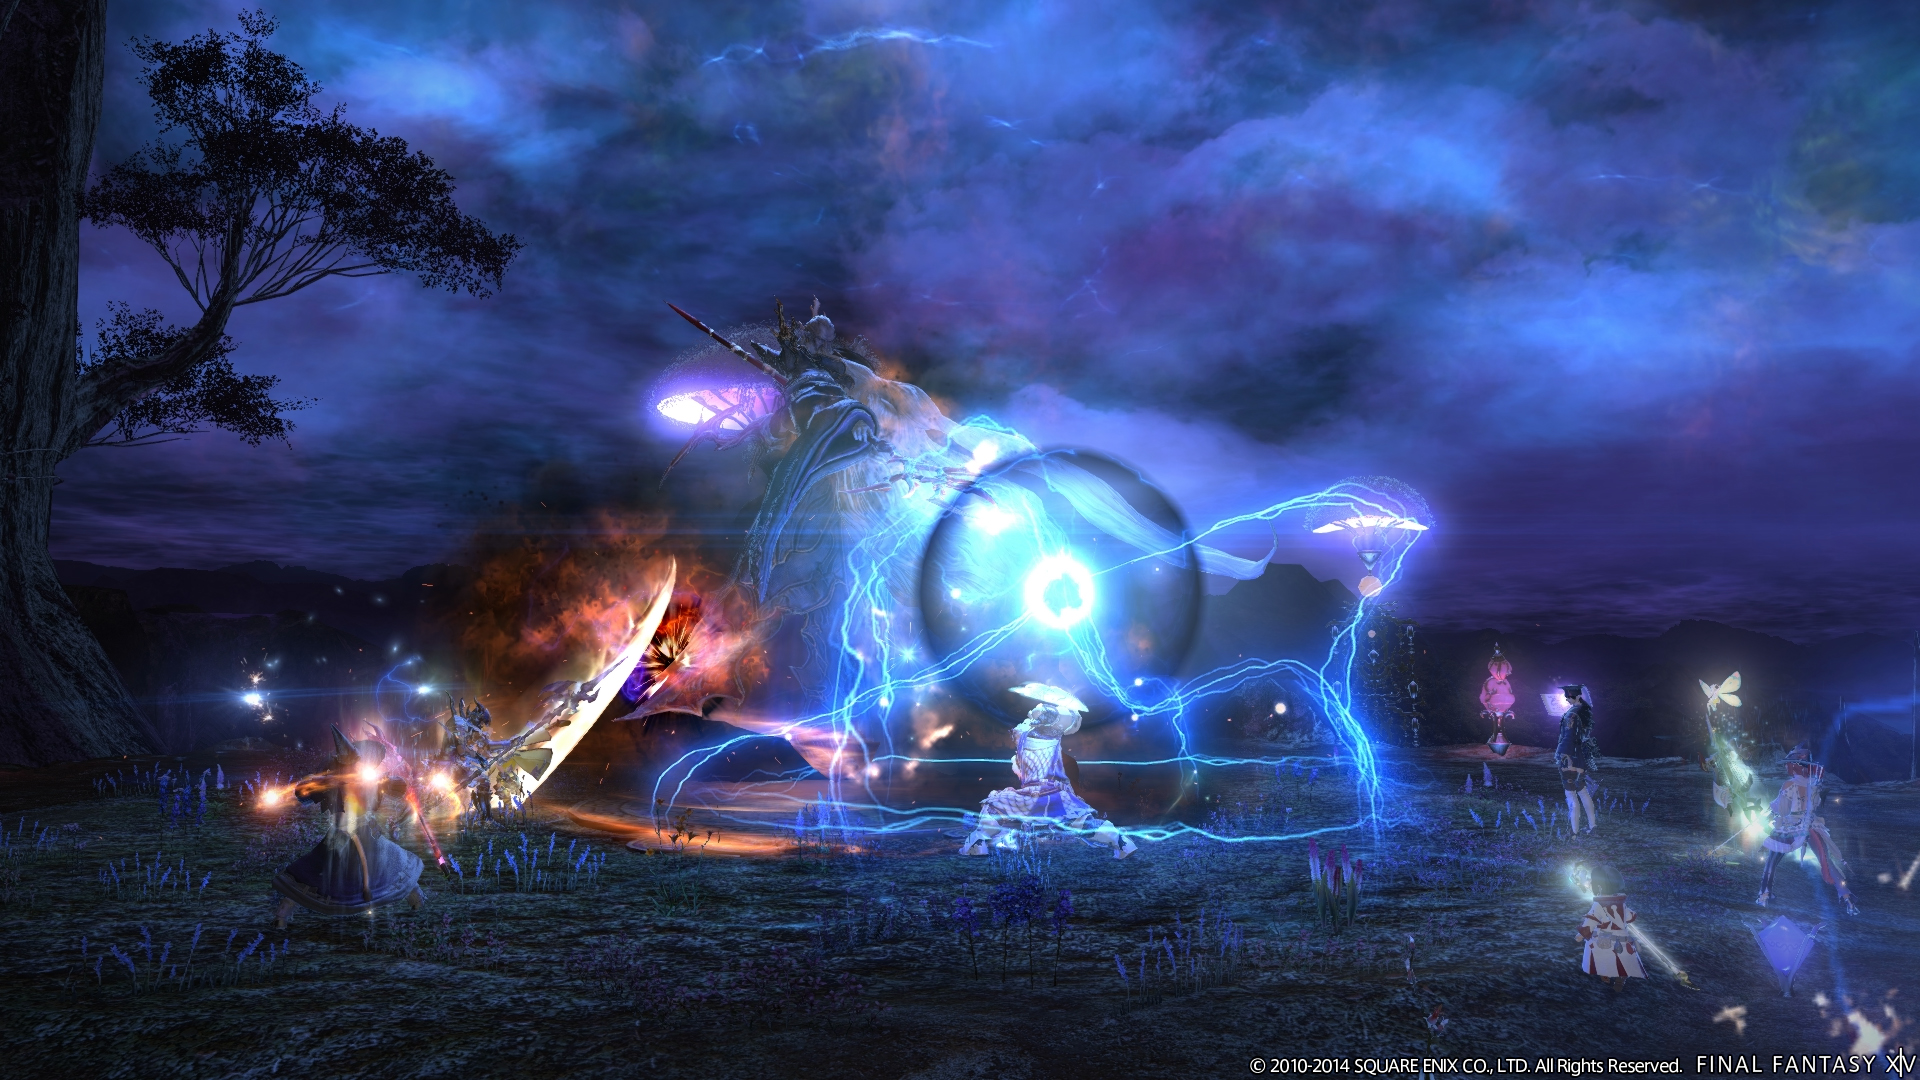 The Bosses In The Next Tier Of Final Fantasy XIVs Crystal Tower Nova Crystallis